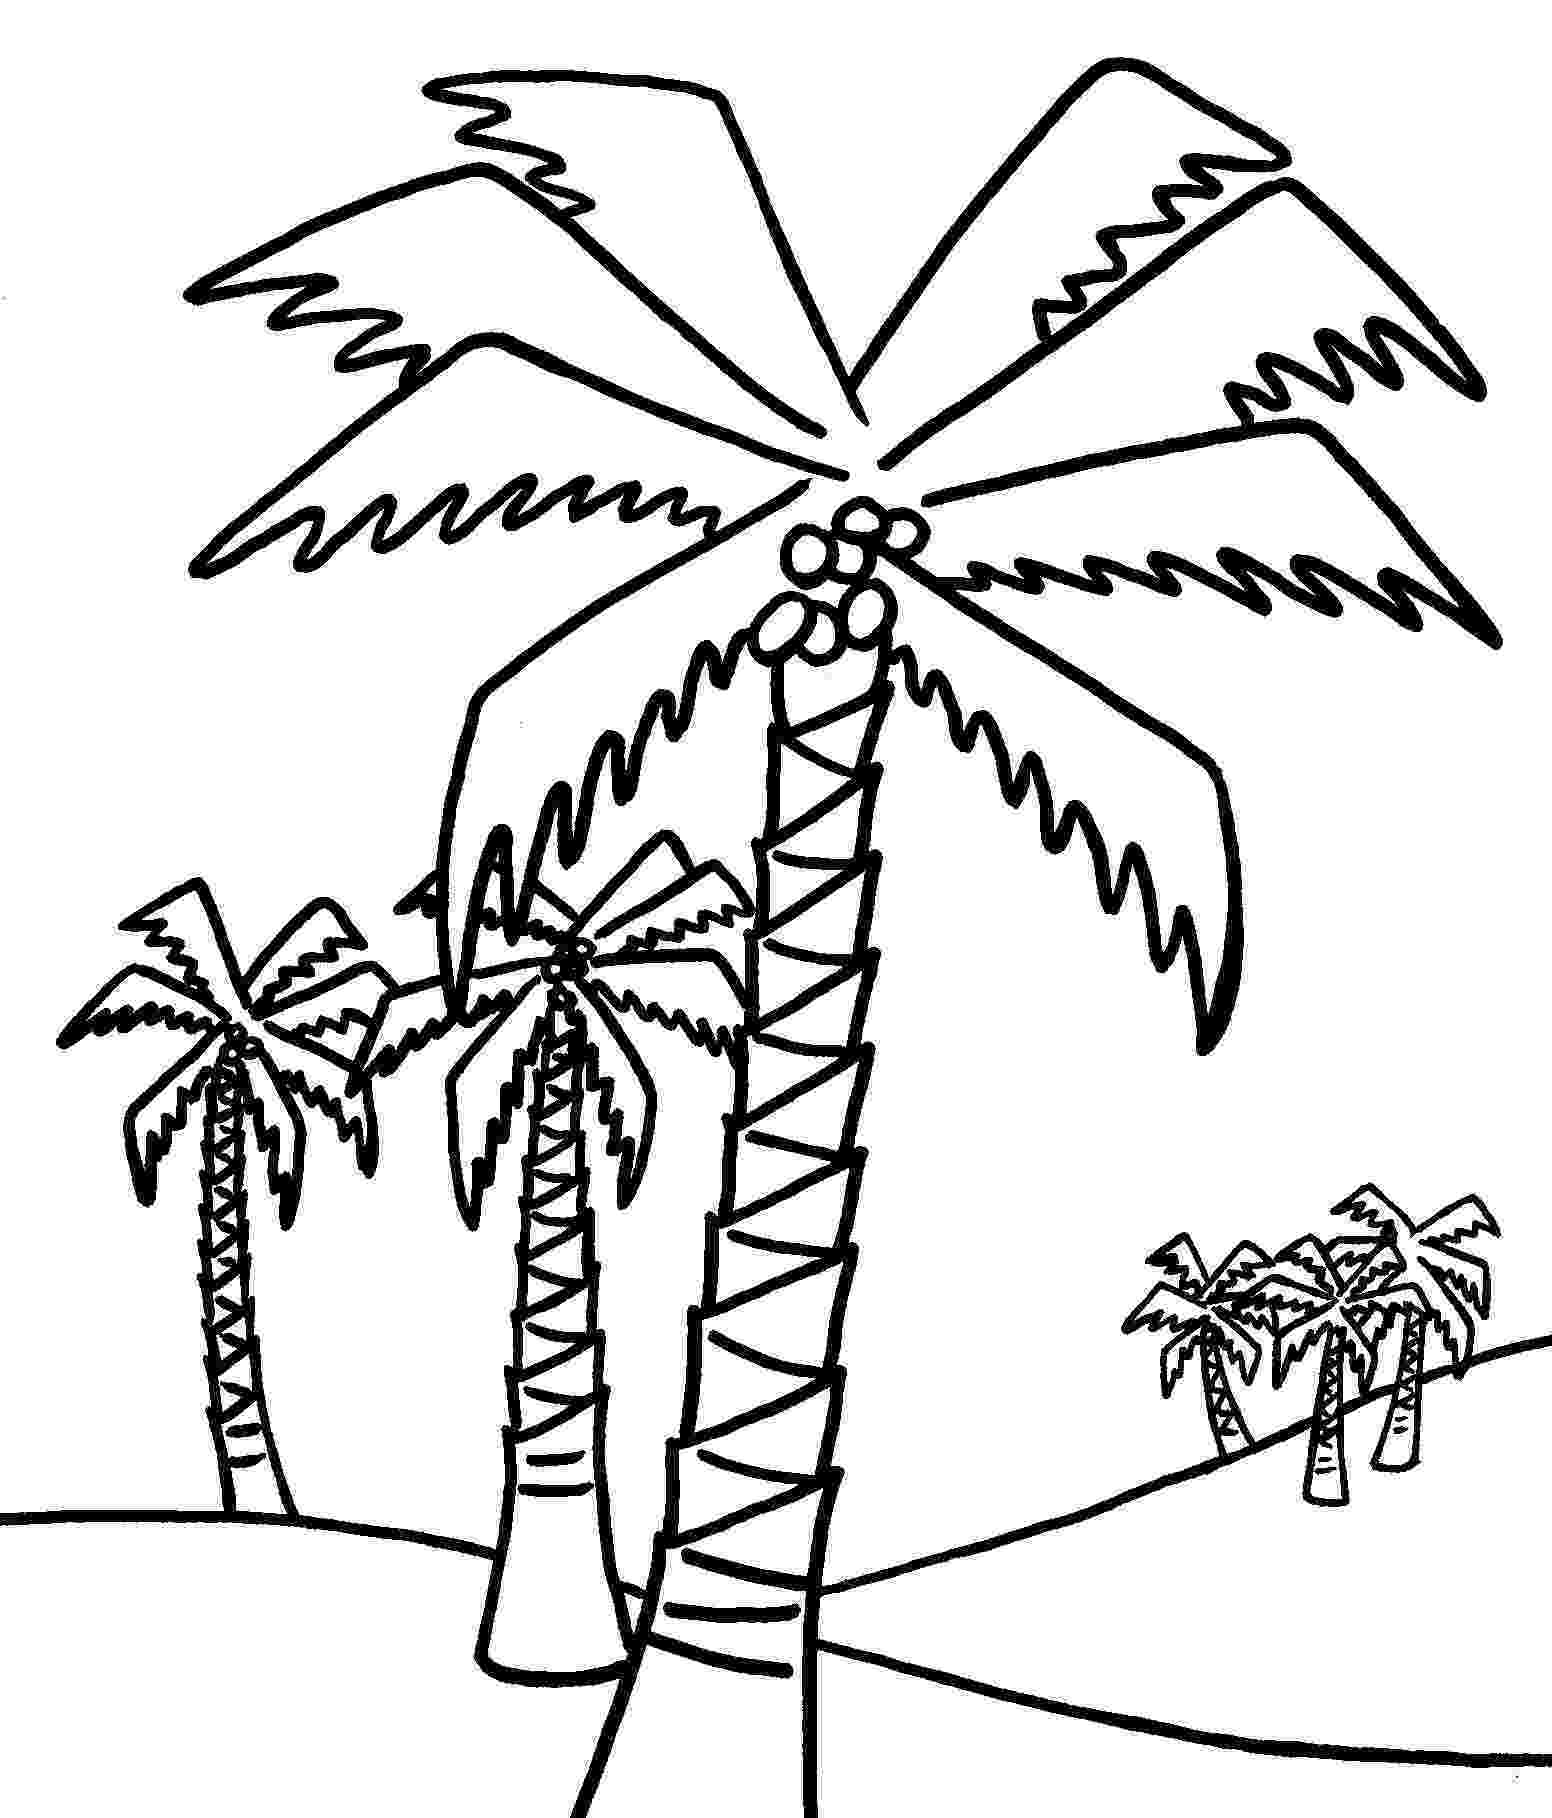 coloring book pages trees tree coloring pages getcoloringpagescom pages coloring book trees